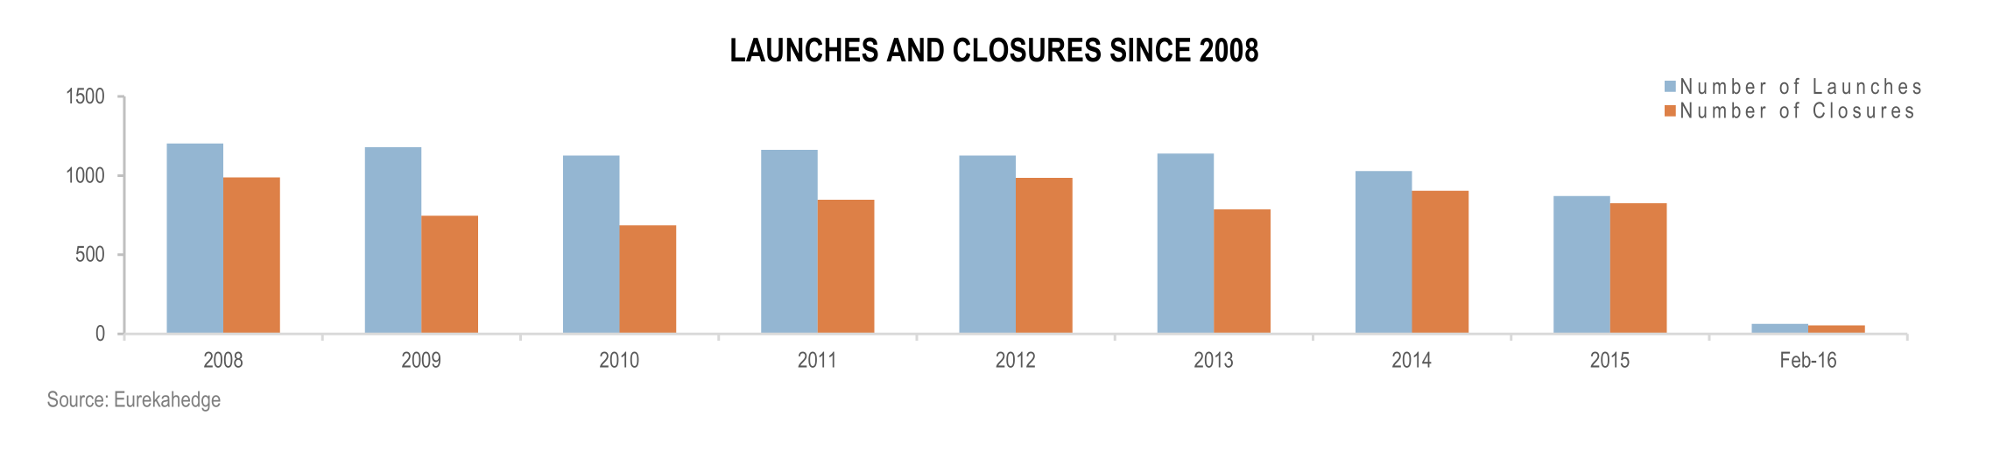 Hedge Funds April 2016 Infographic - Hedge fund launches and closures since 2008